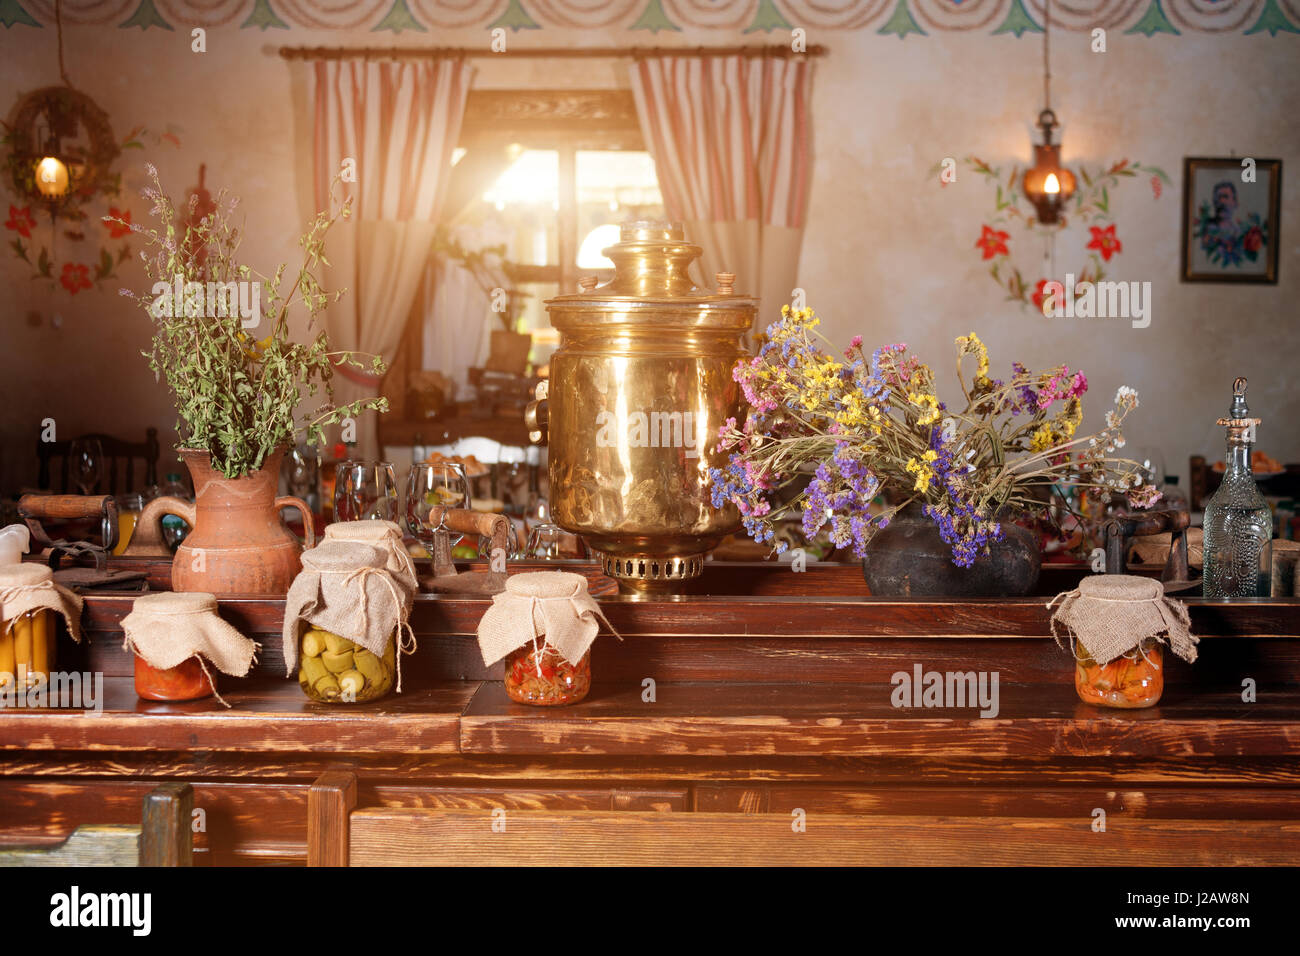 Unique Ethnic Restaurant Interior Traditional Design Ukrainian Stock Photo Alamy